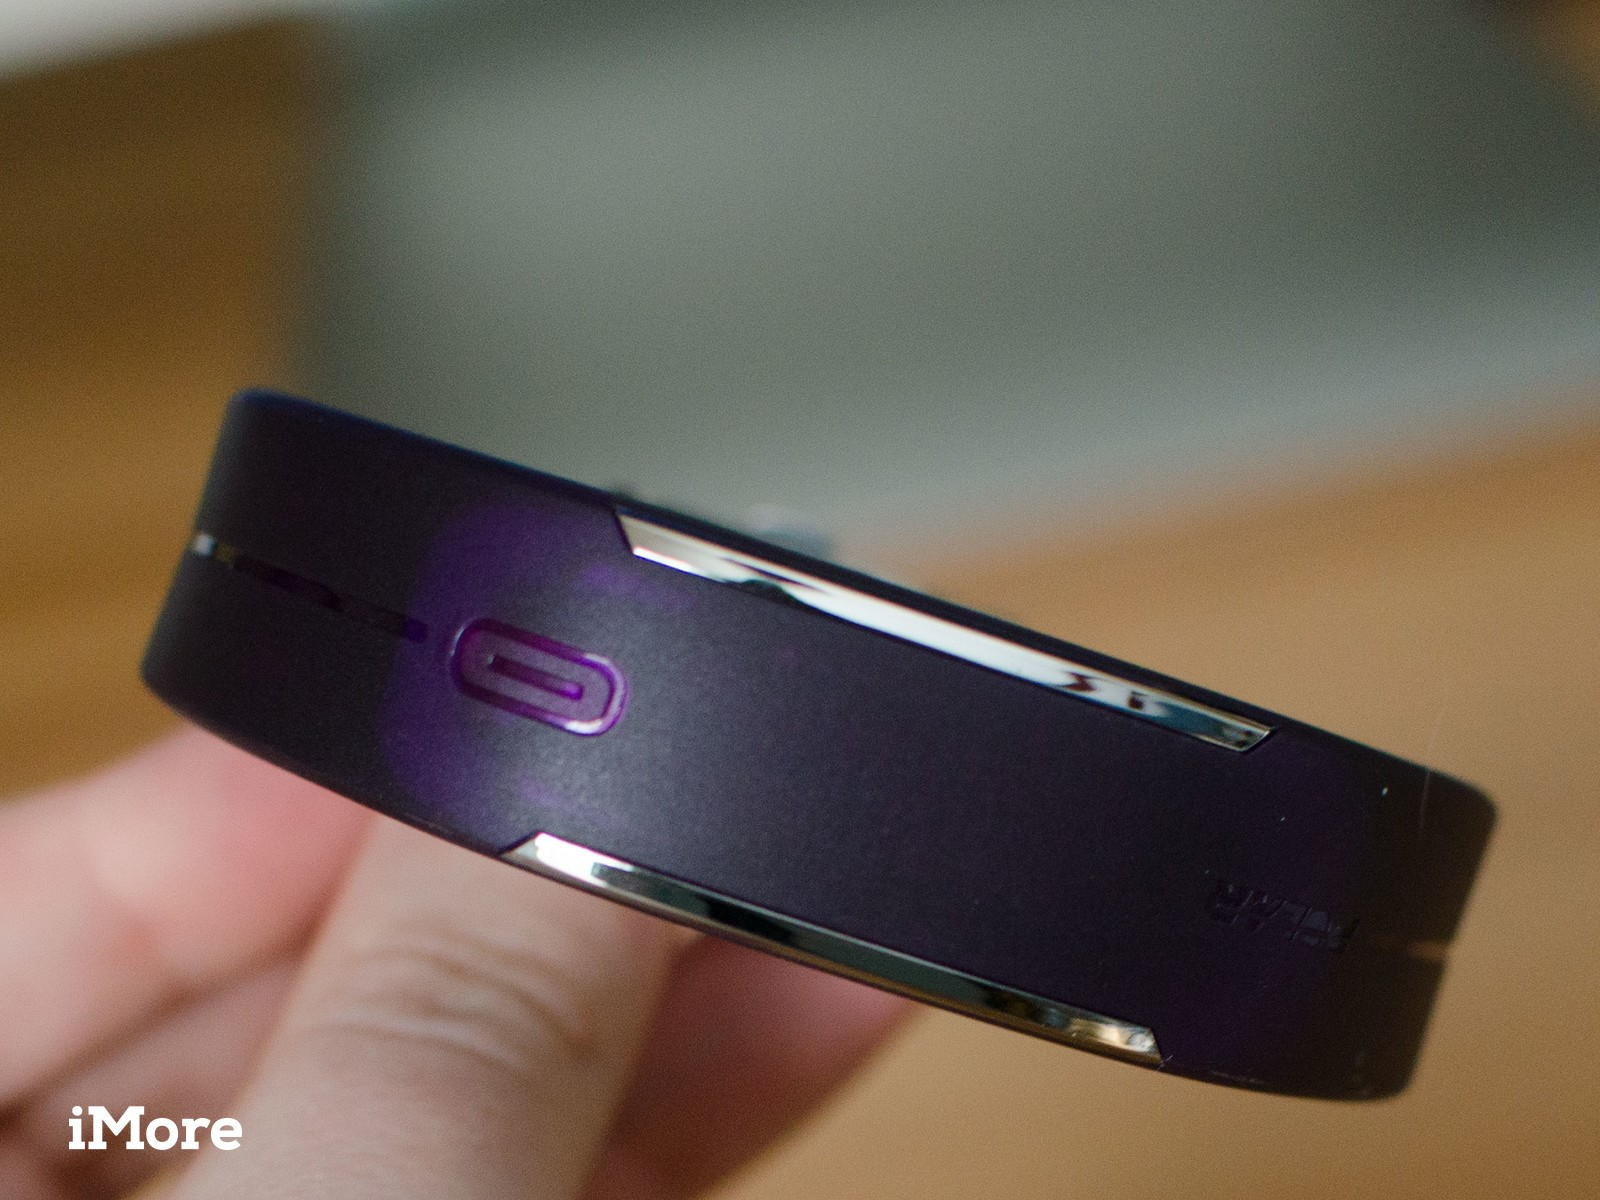 Polar Loop fitness tracker review and hands-on